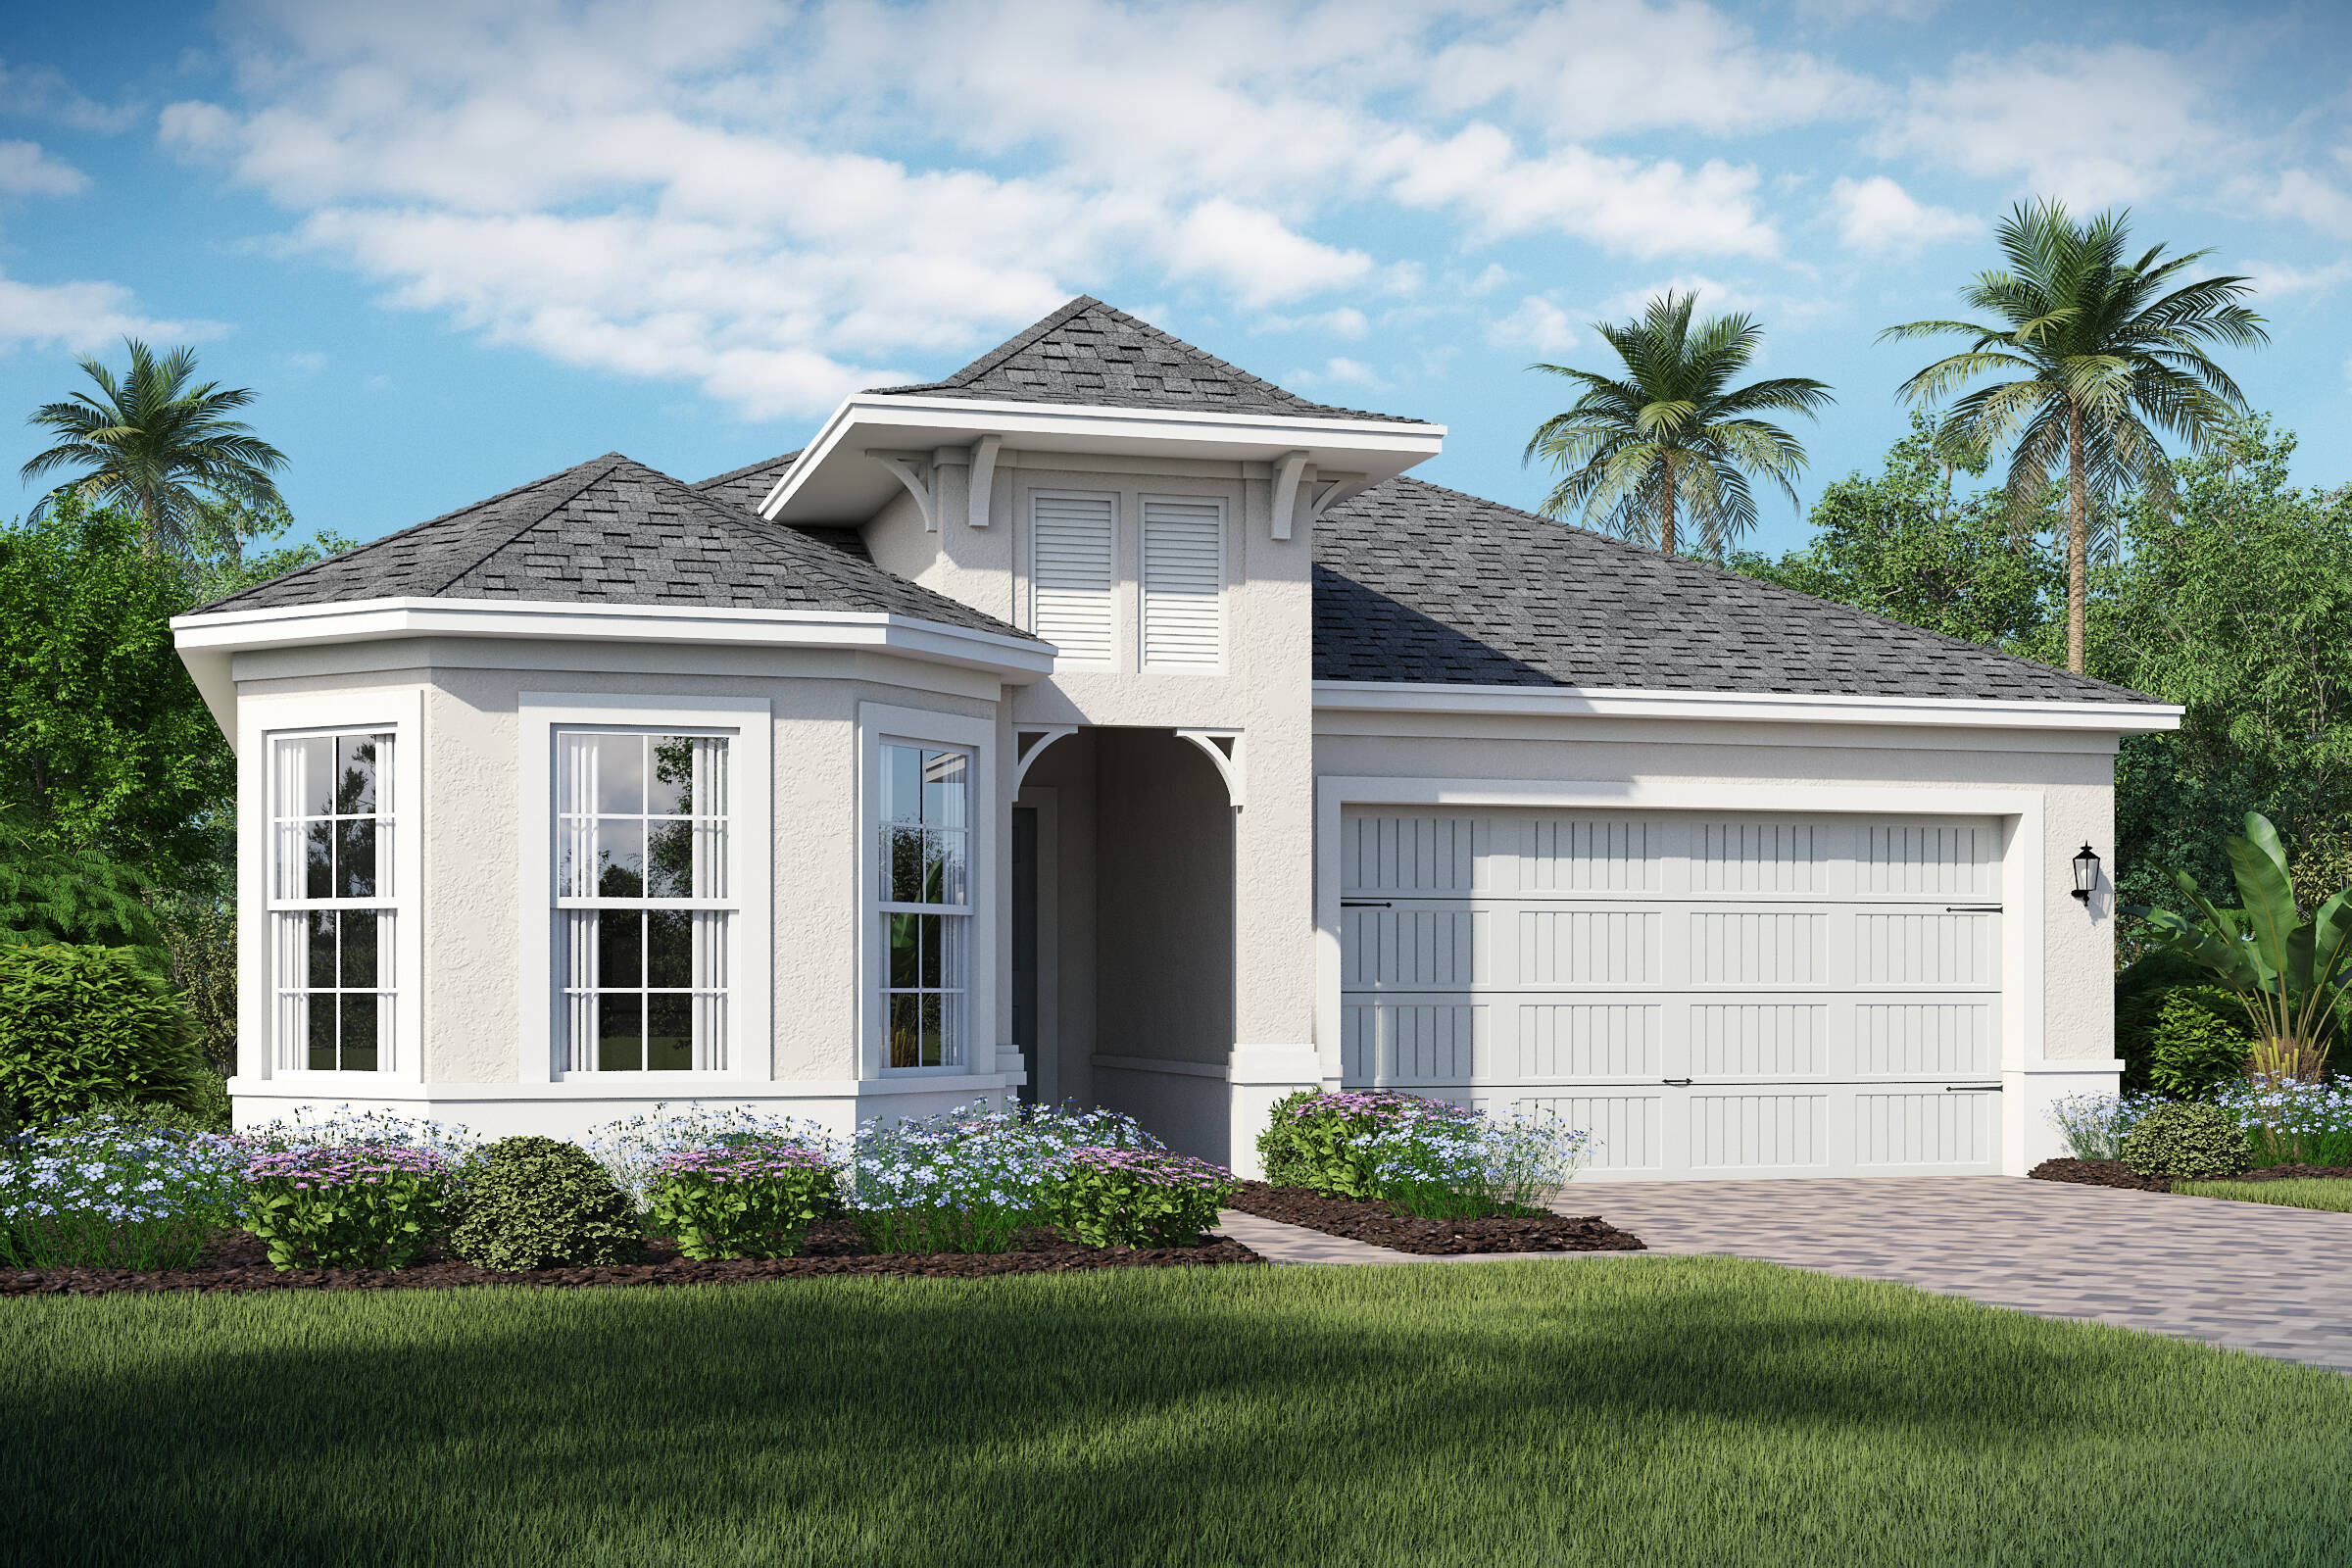 Dominica-B-elev new homes in orlando